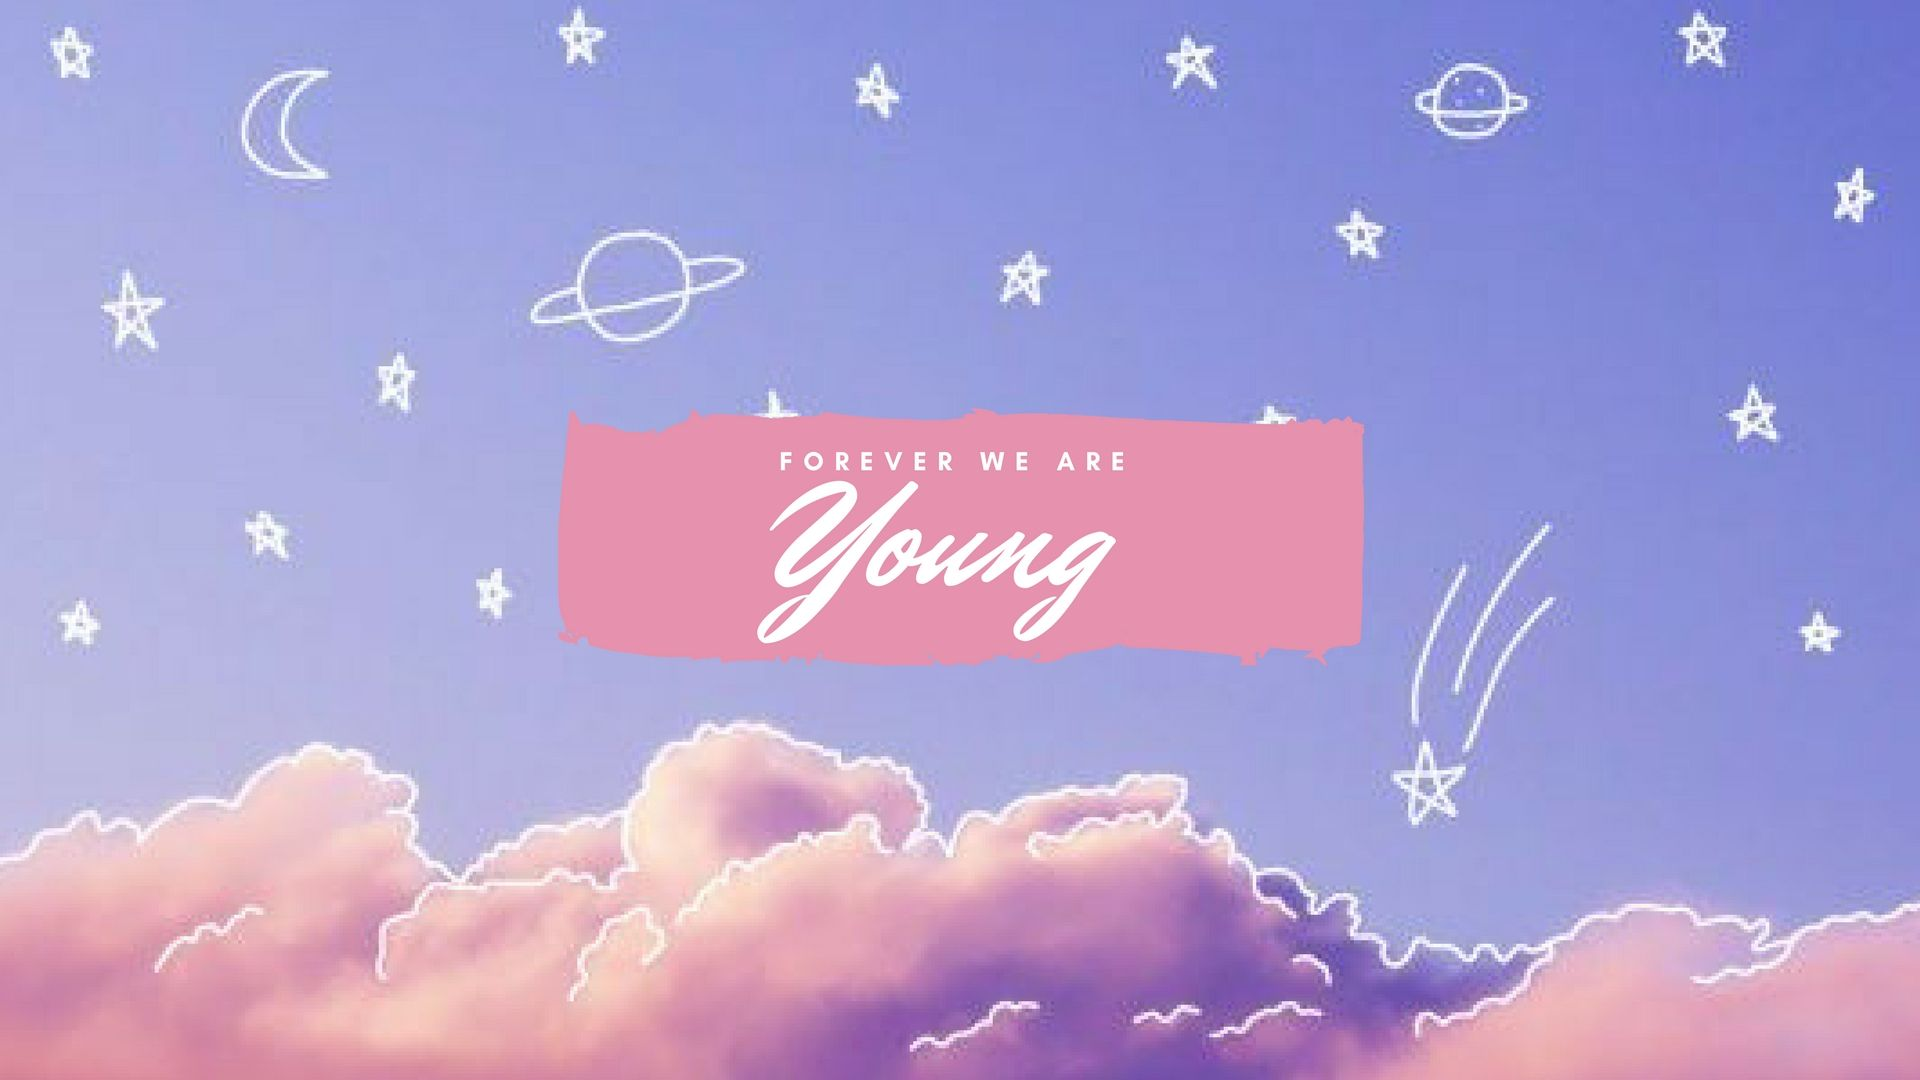 Forever We Are Young Bts Bts Wallpaper For Desktop Computer Bts Cute Desktop Wallpaper Cute Laptop Wallpaper Macbook Wallpaper